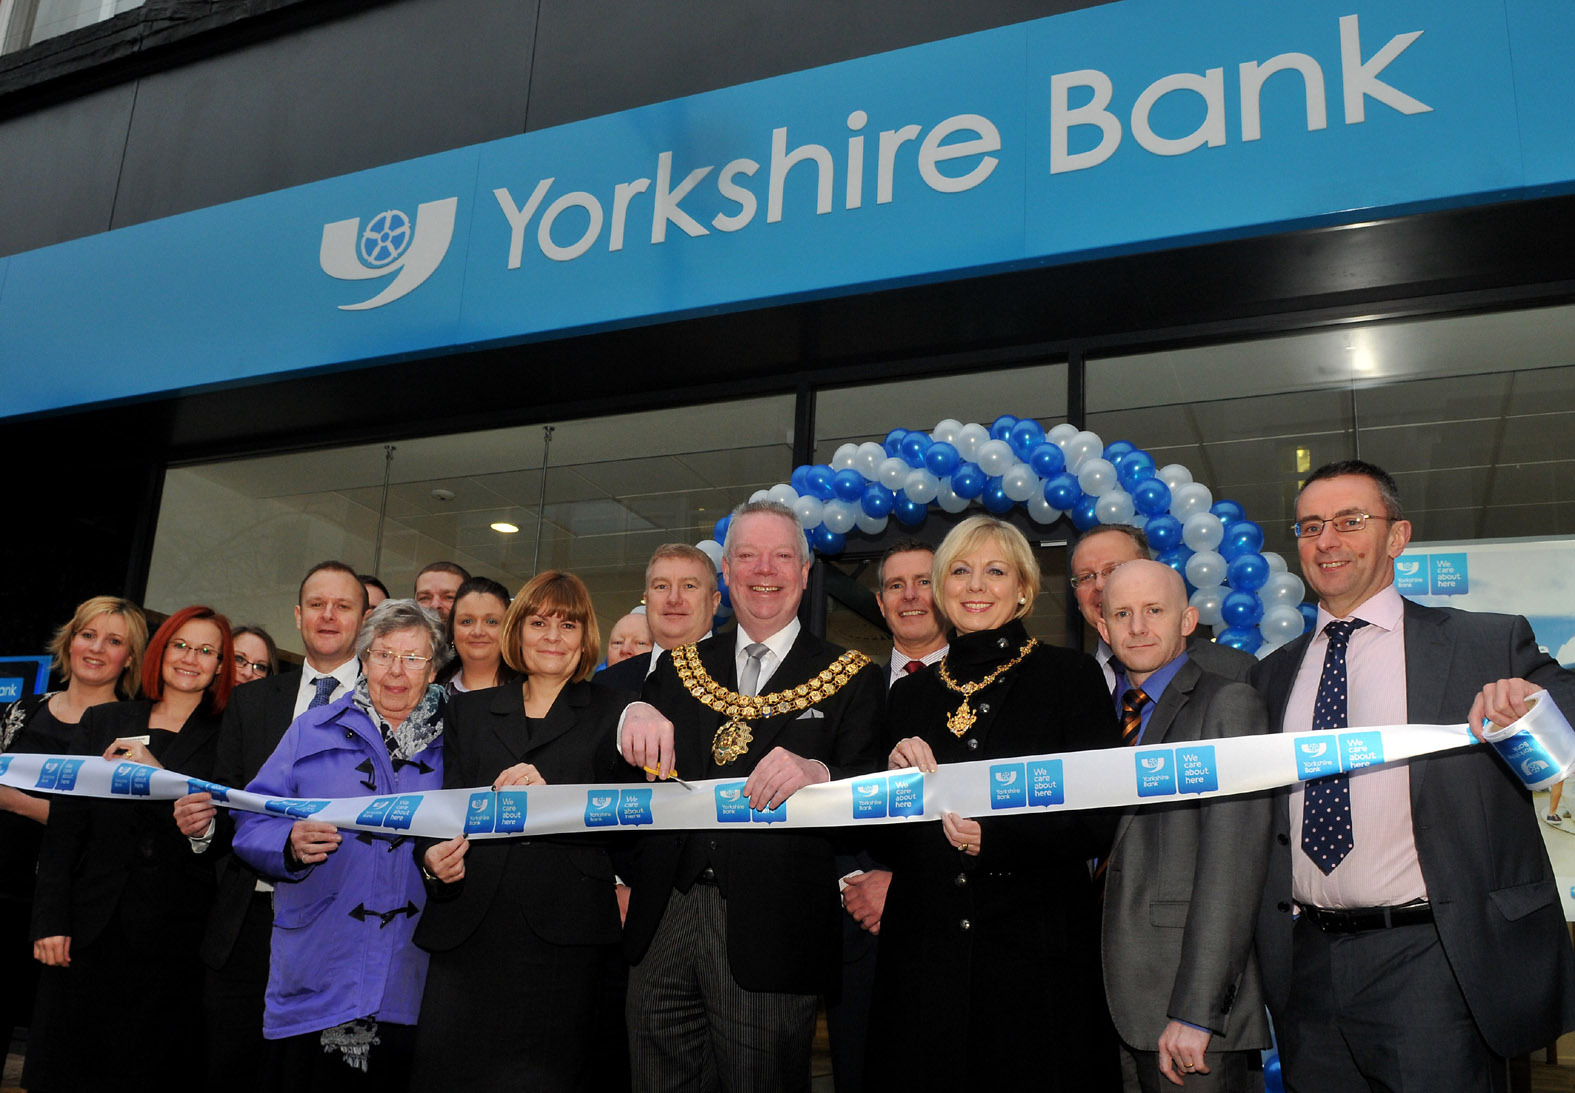 new Yorkshire Bank branch